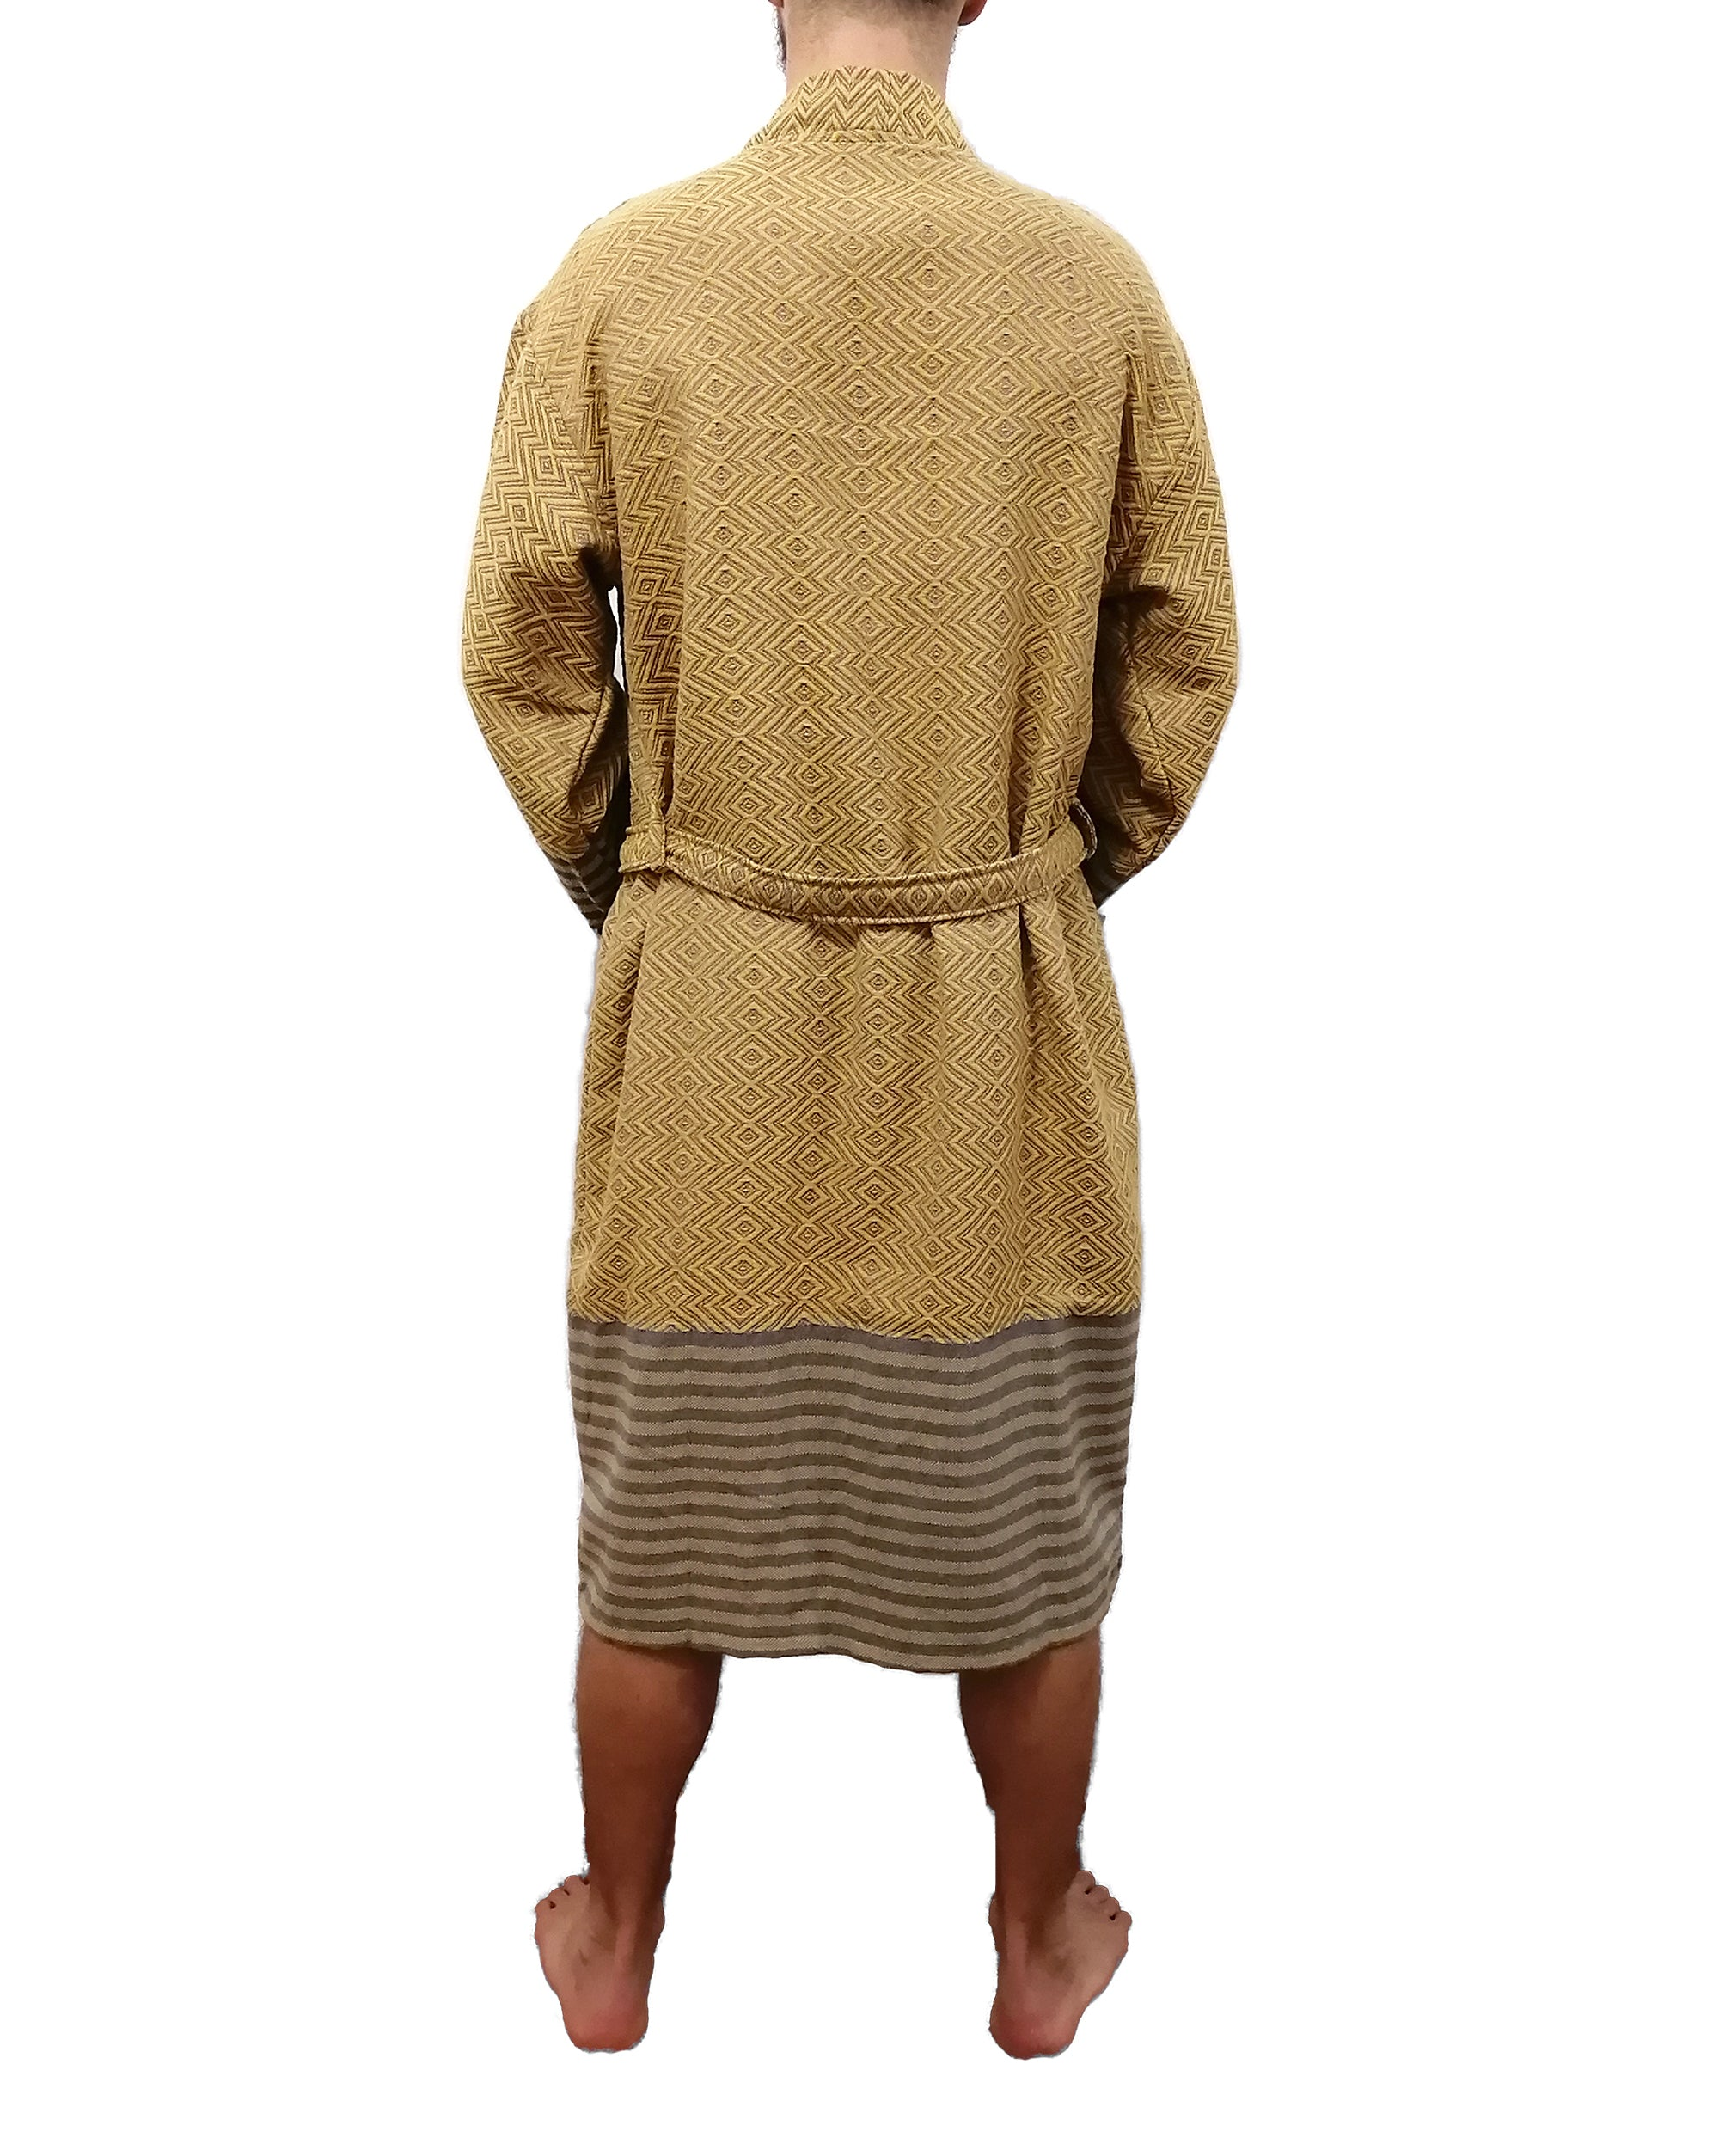 Turkish hammam bathrobe sultan gold made with the finest quality Turkish cotton, super soft, lightweight Turkish towel robes, Perfect for drying off and staying warm, superior absorbency.it is with arrow pattern.